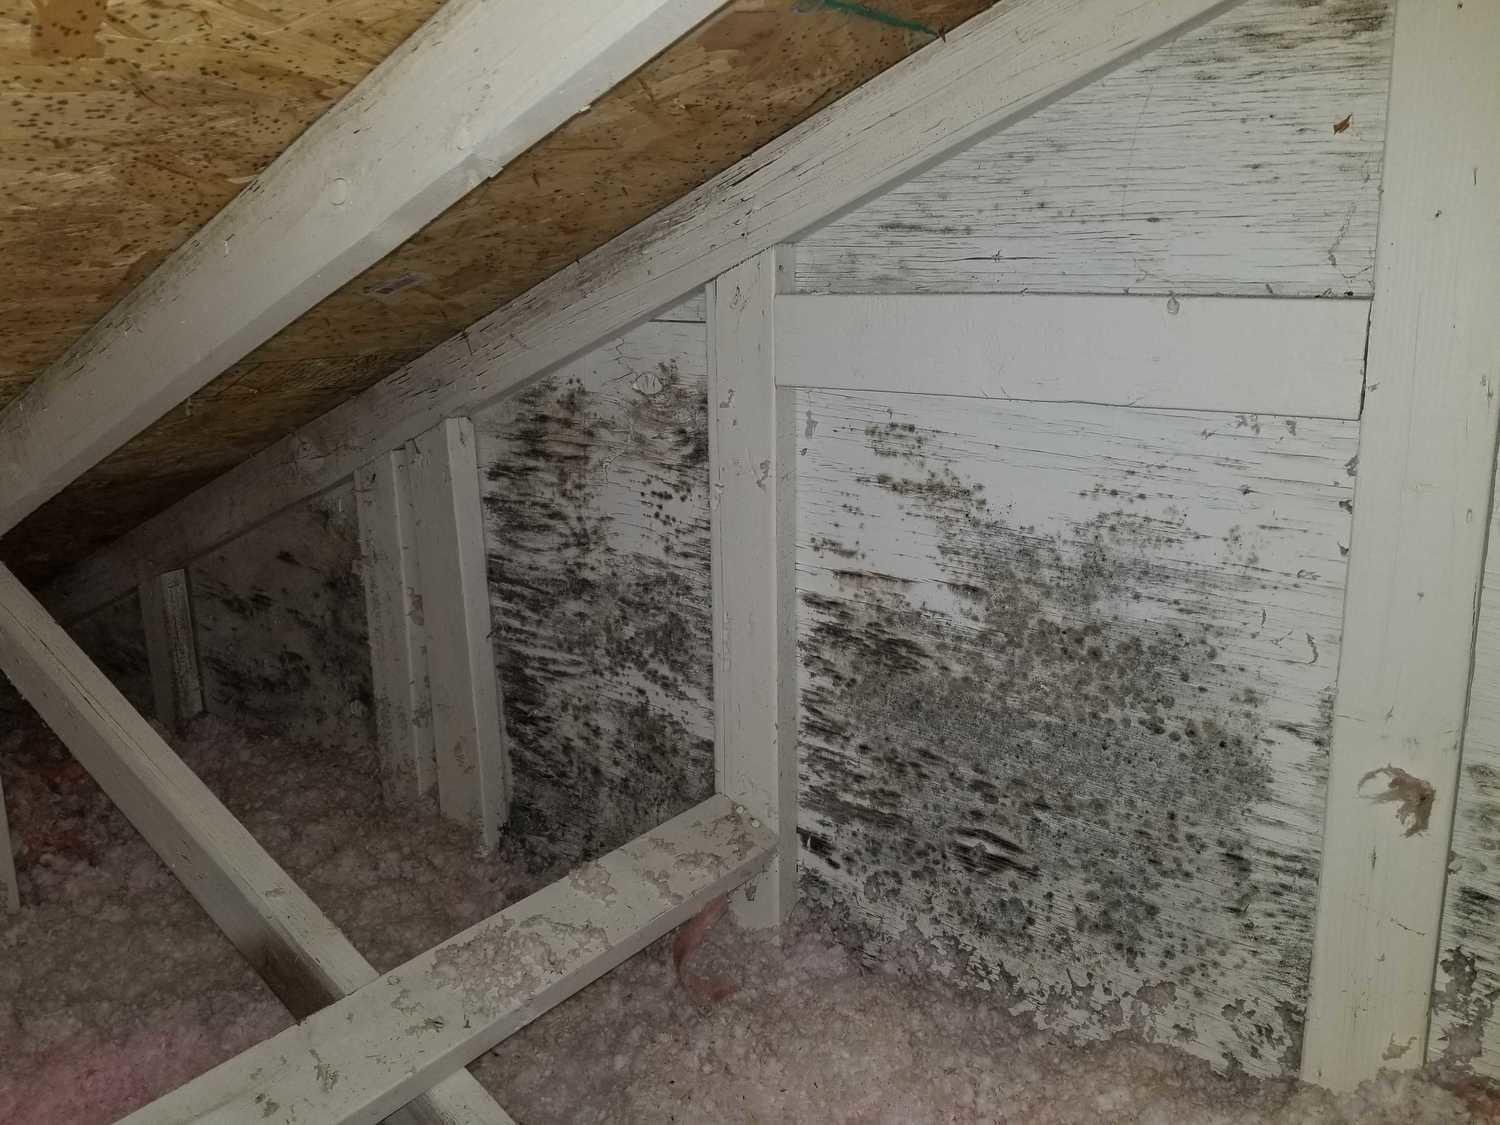 Mold showing on side wall